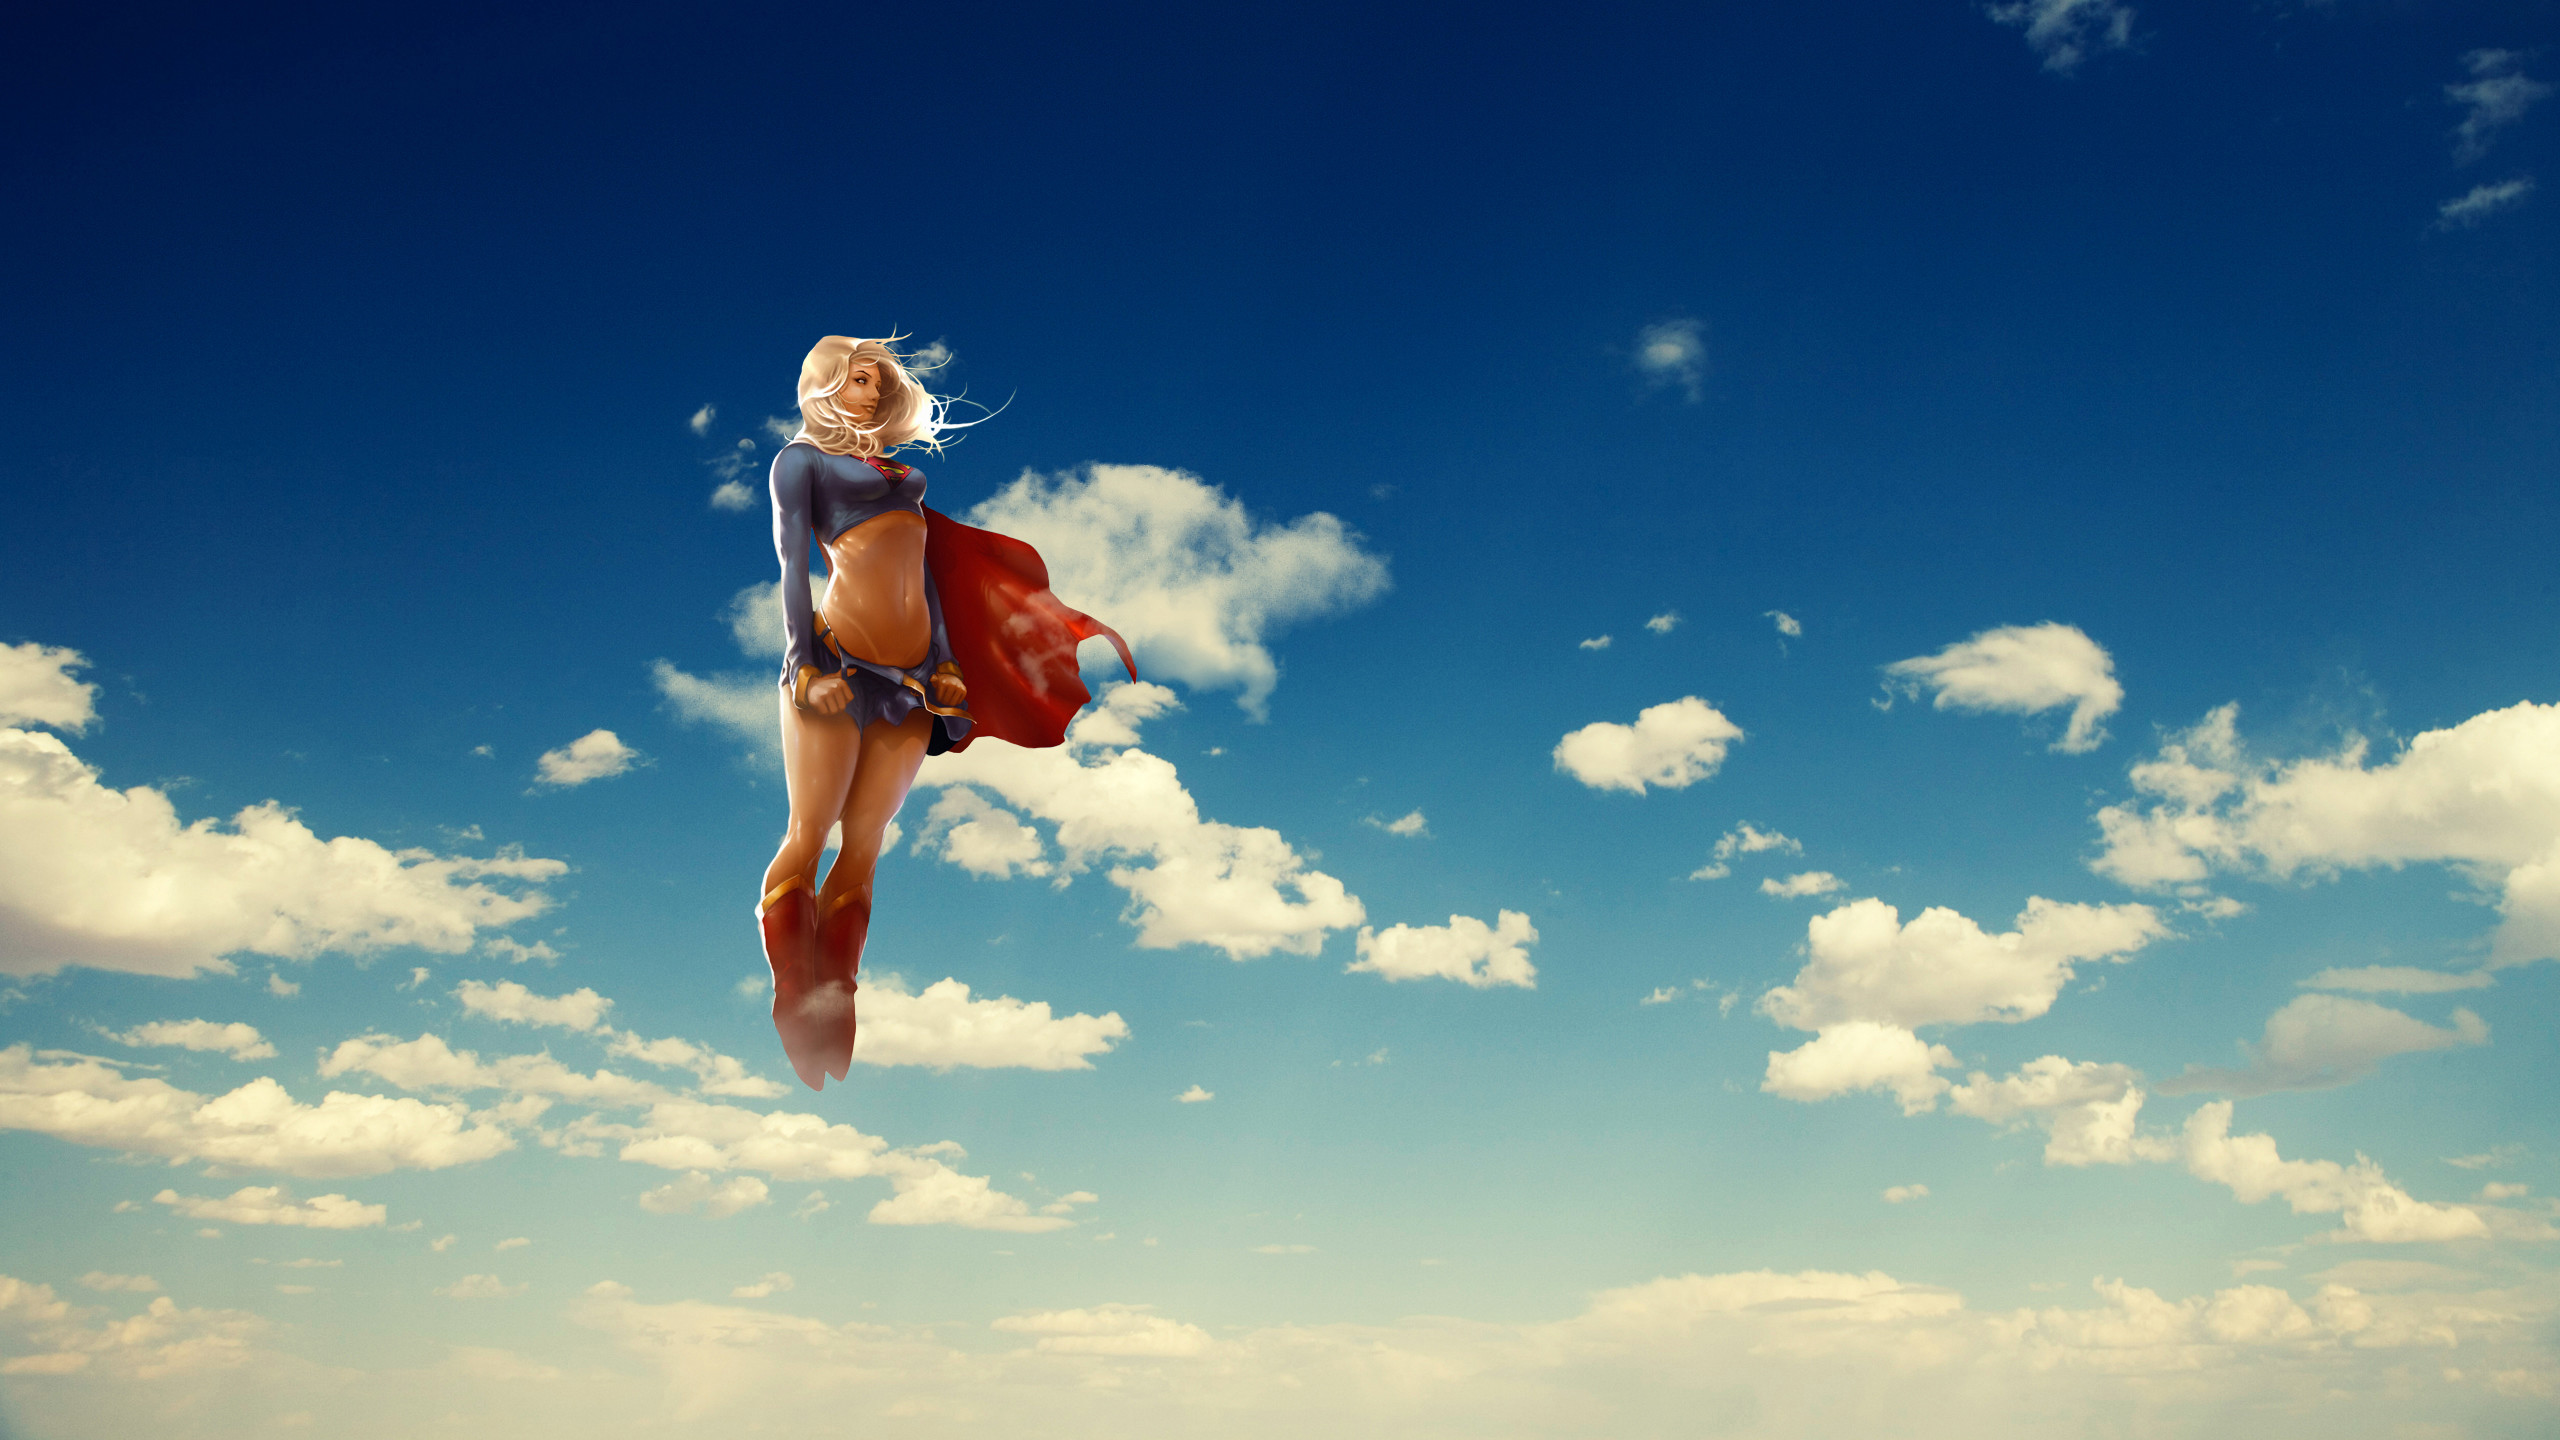 Super woman – My HD Wallpapers